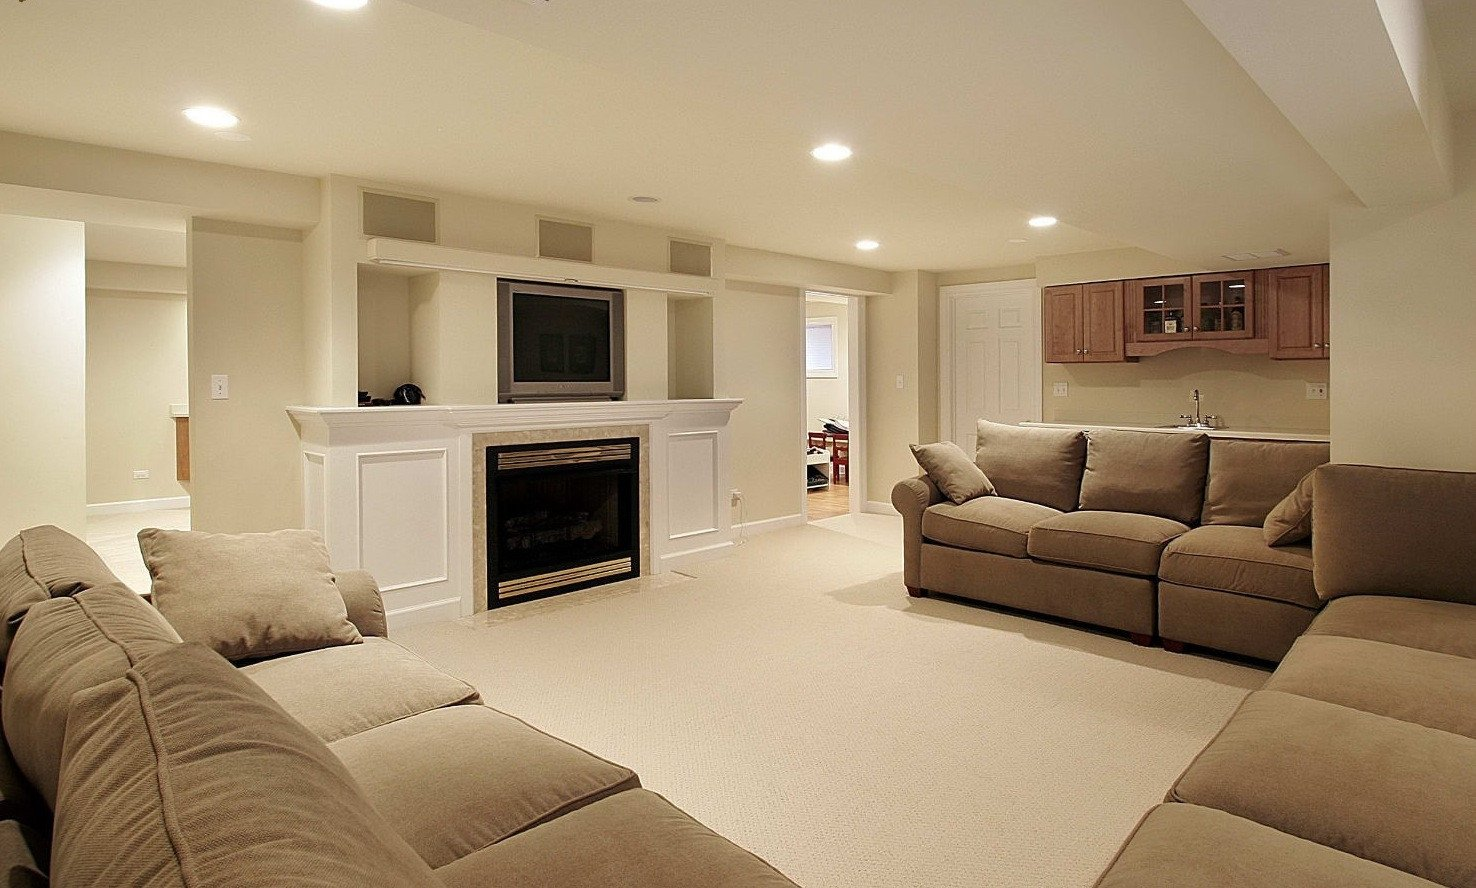 Small Basement Living Room Ideas Finished Basement Ideas for Cozy Additional Living Space